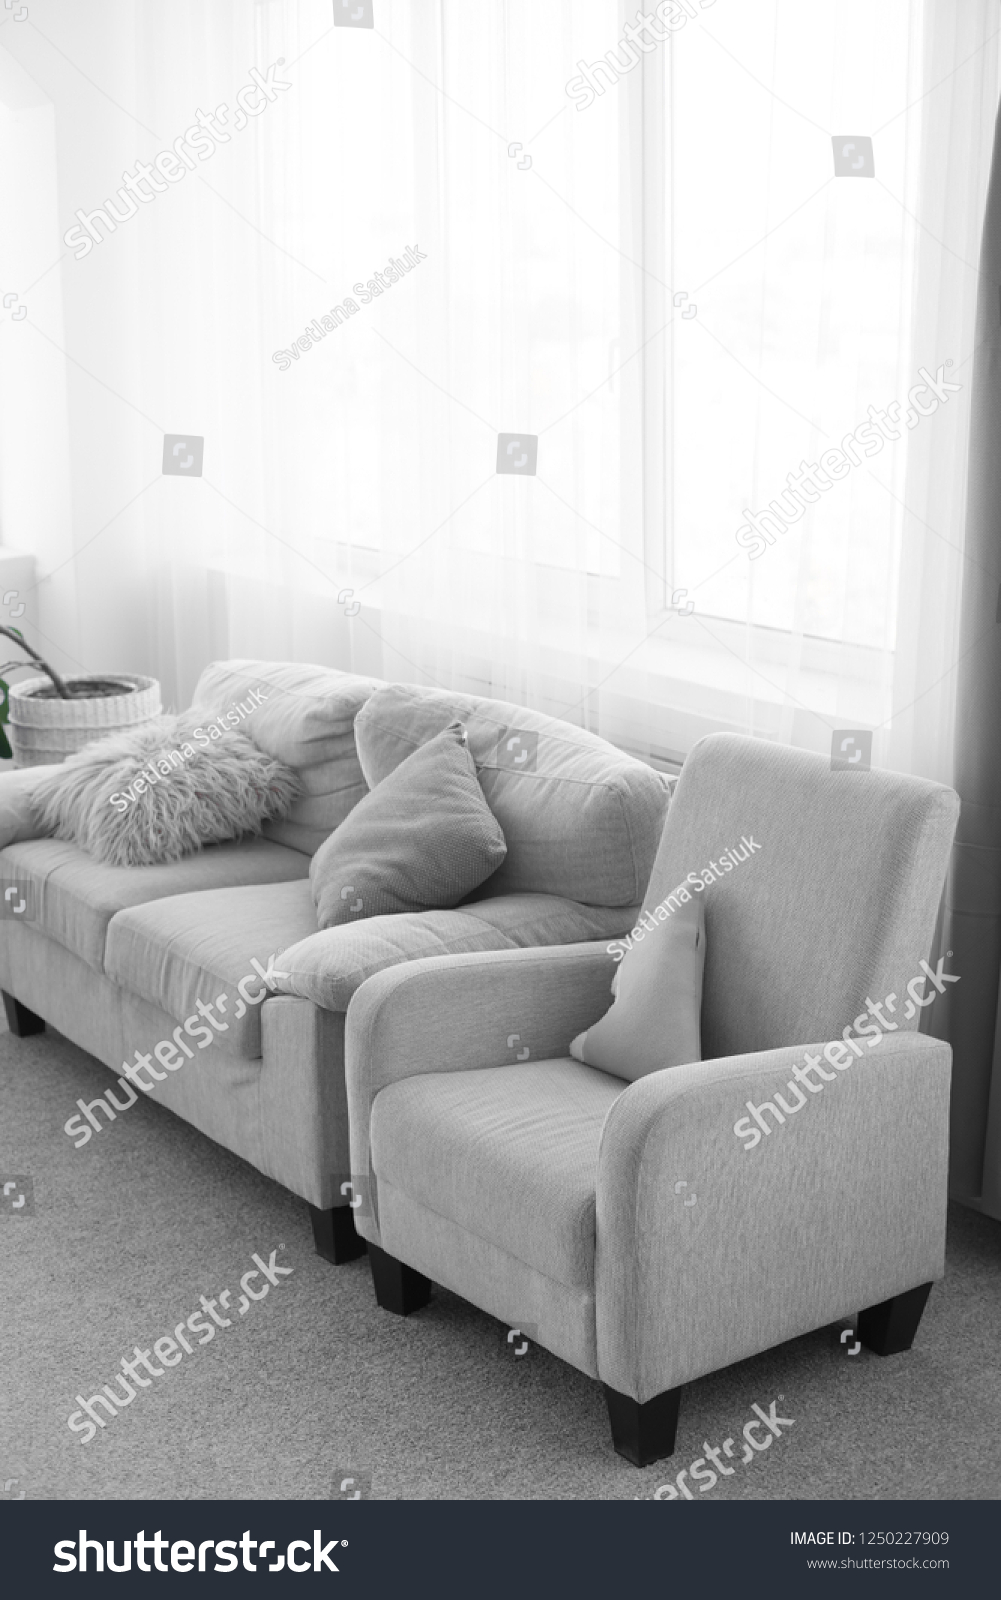 Sofa Next Grey Sofa Pillows Couch Chair Gray Sofa Stock Photo Edit Now